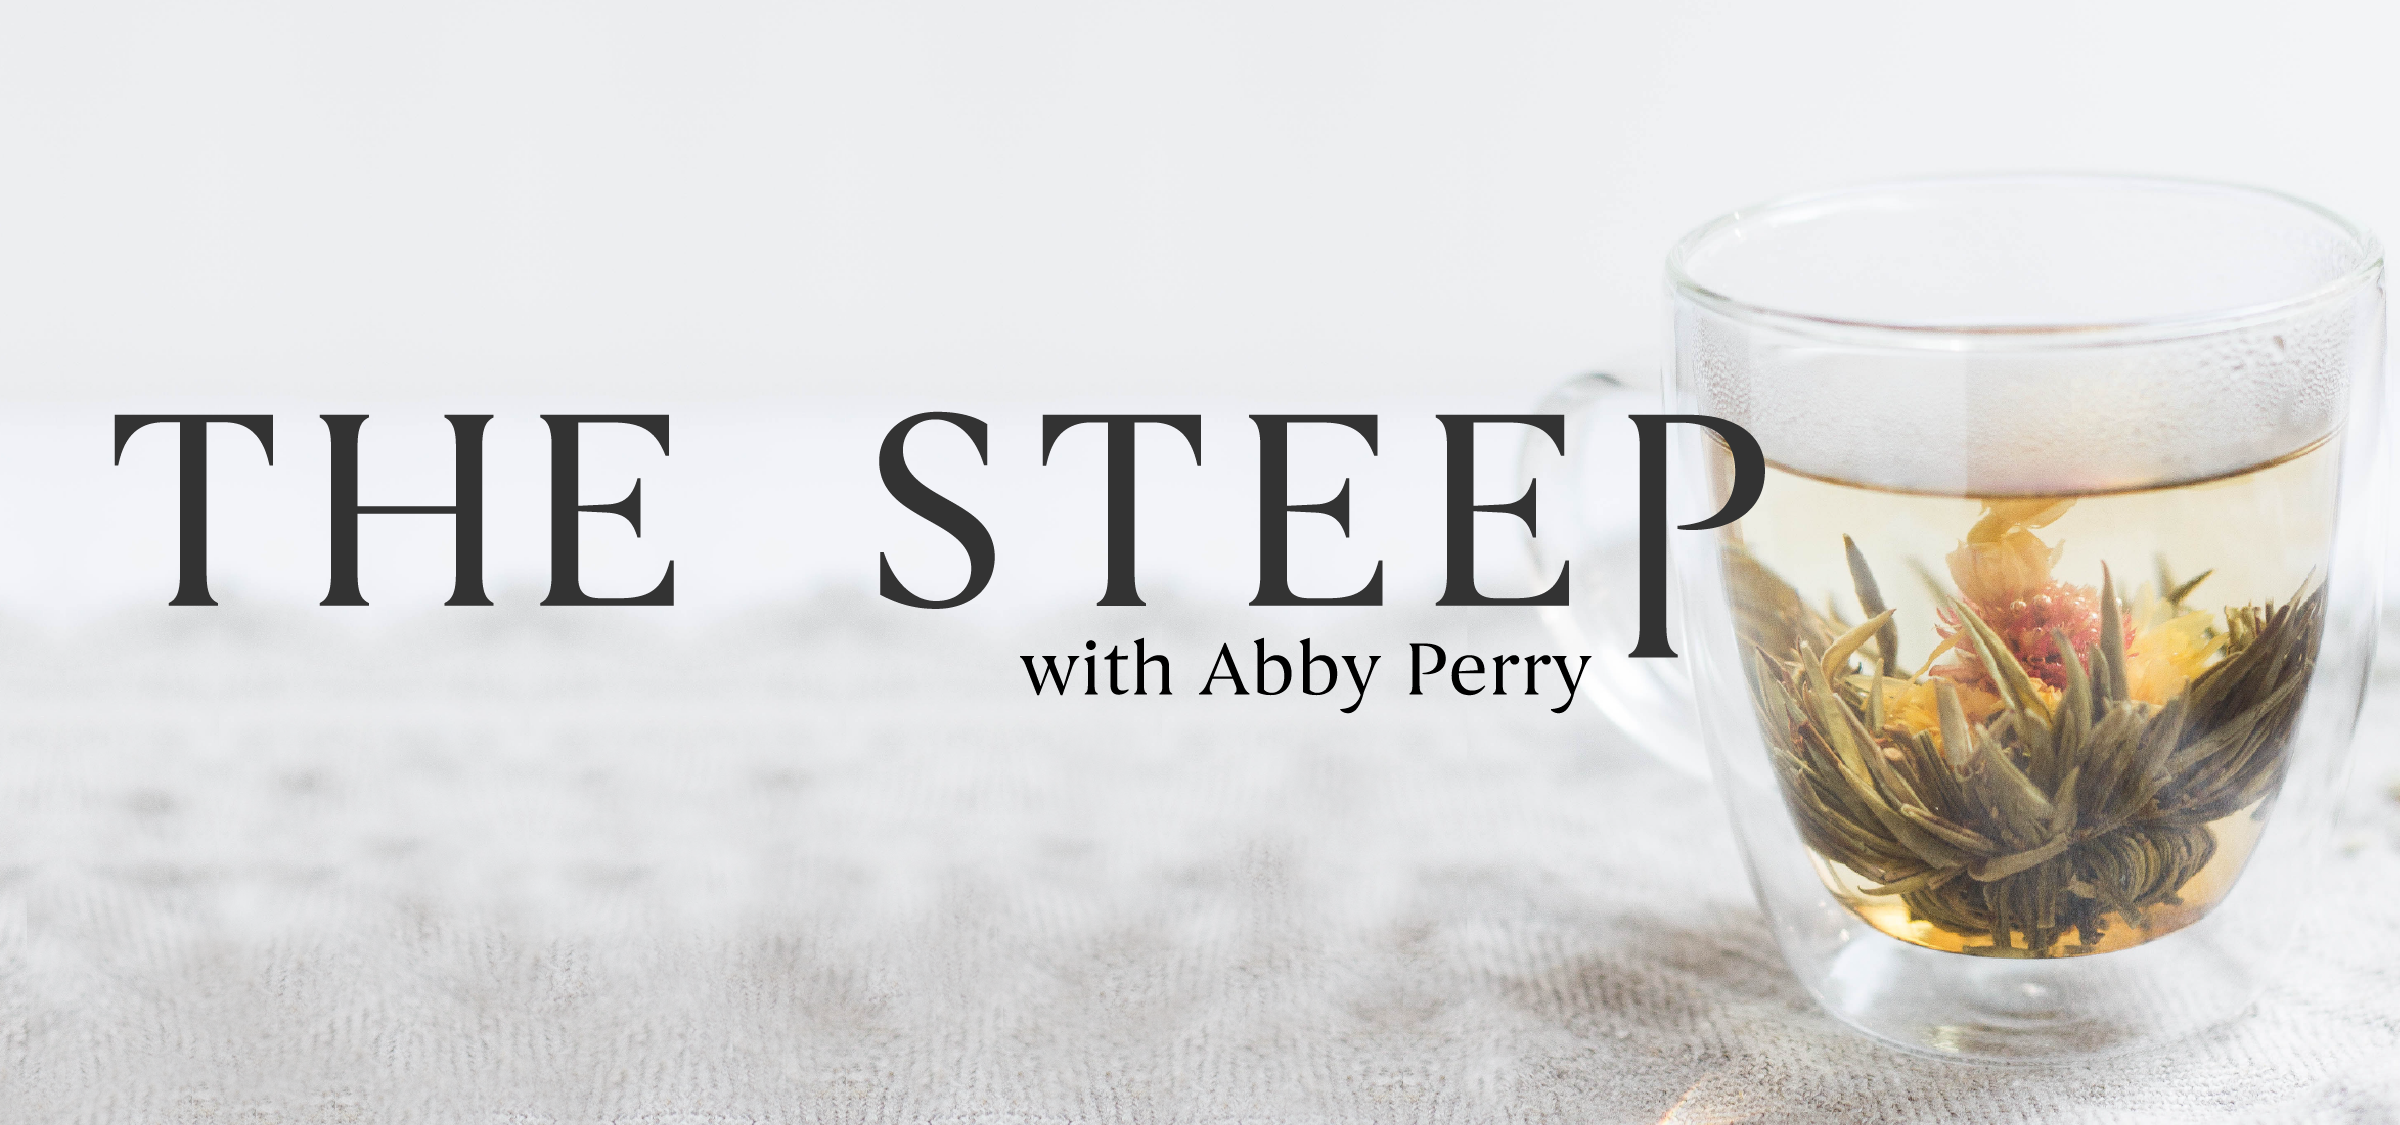 The Steep: The Common Ache of Being Human